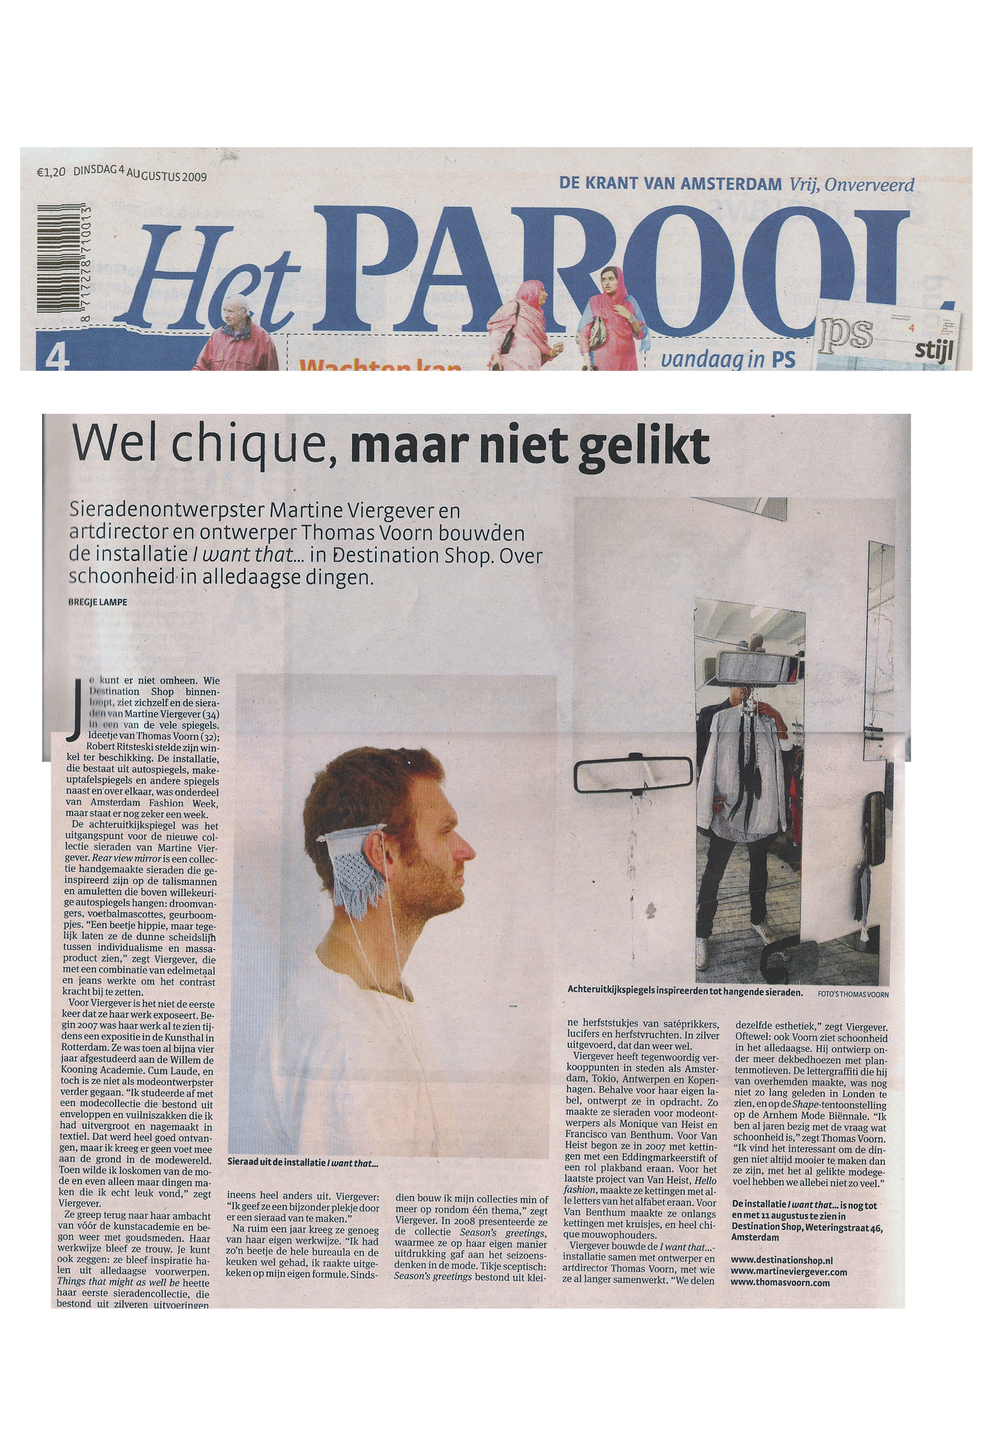 Press-Parool-newspaper-on-Thomas-Voorn.jpg